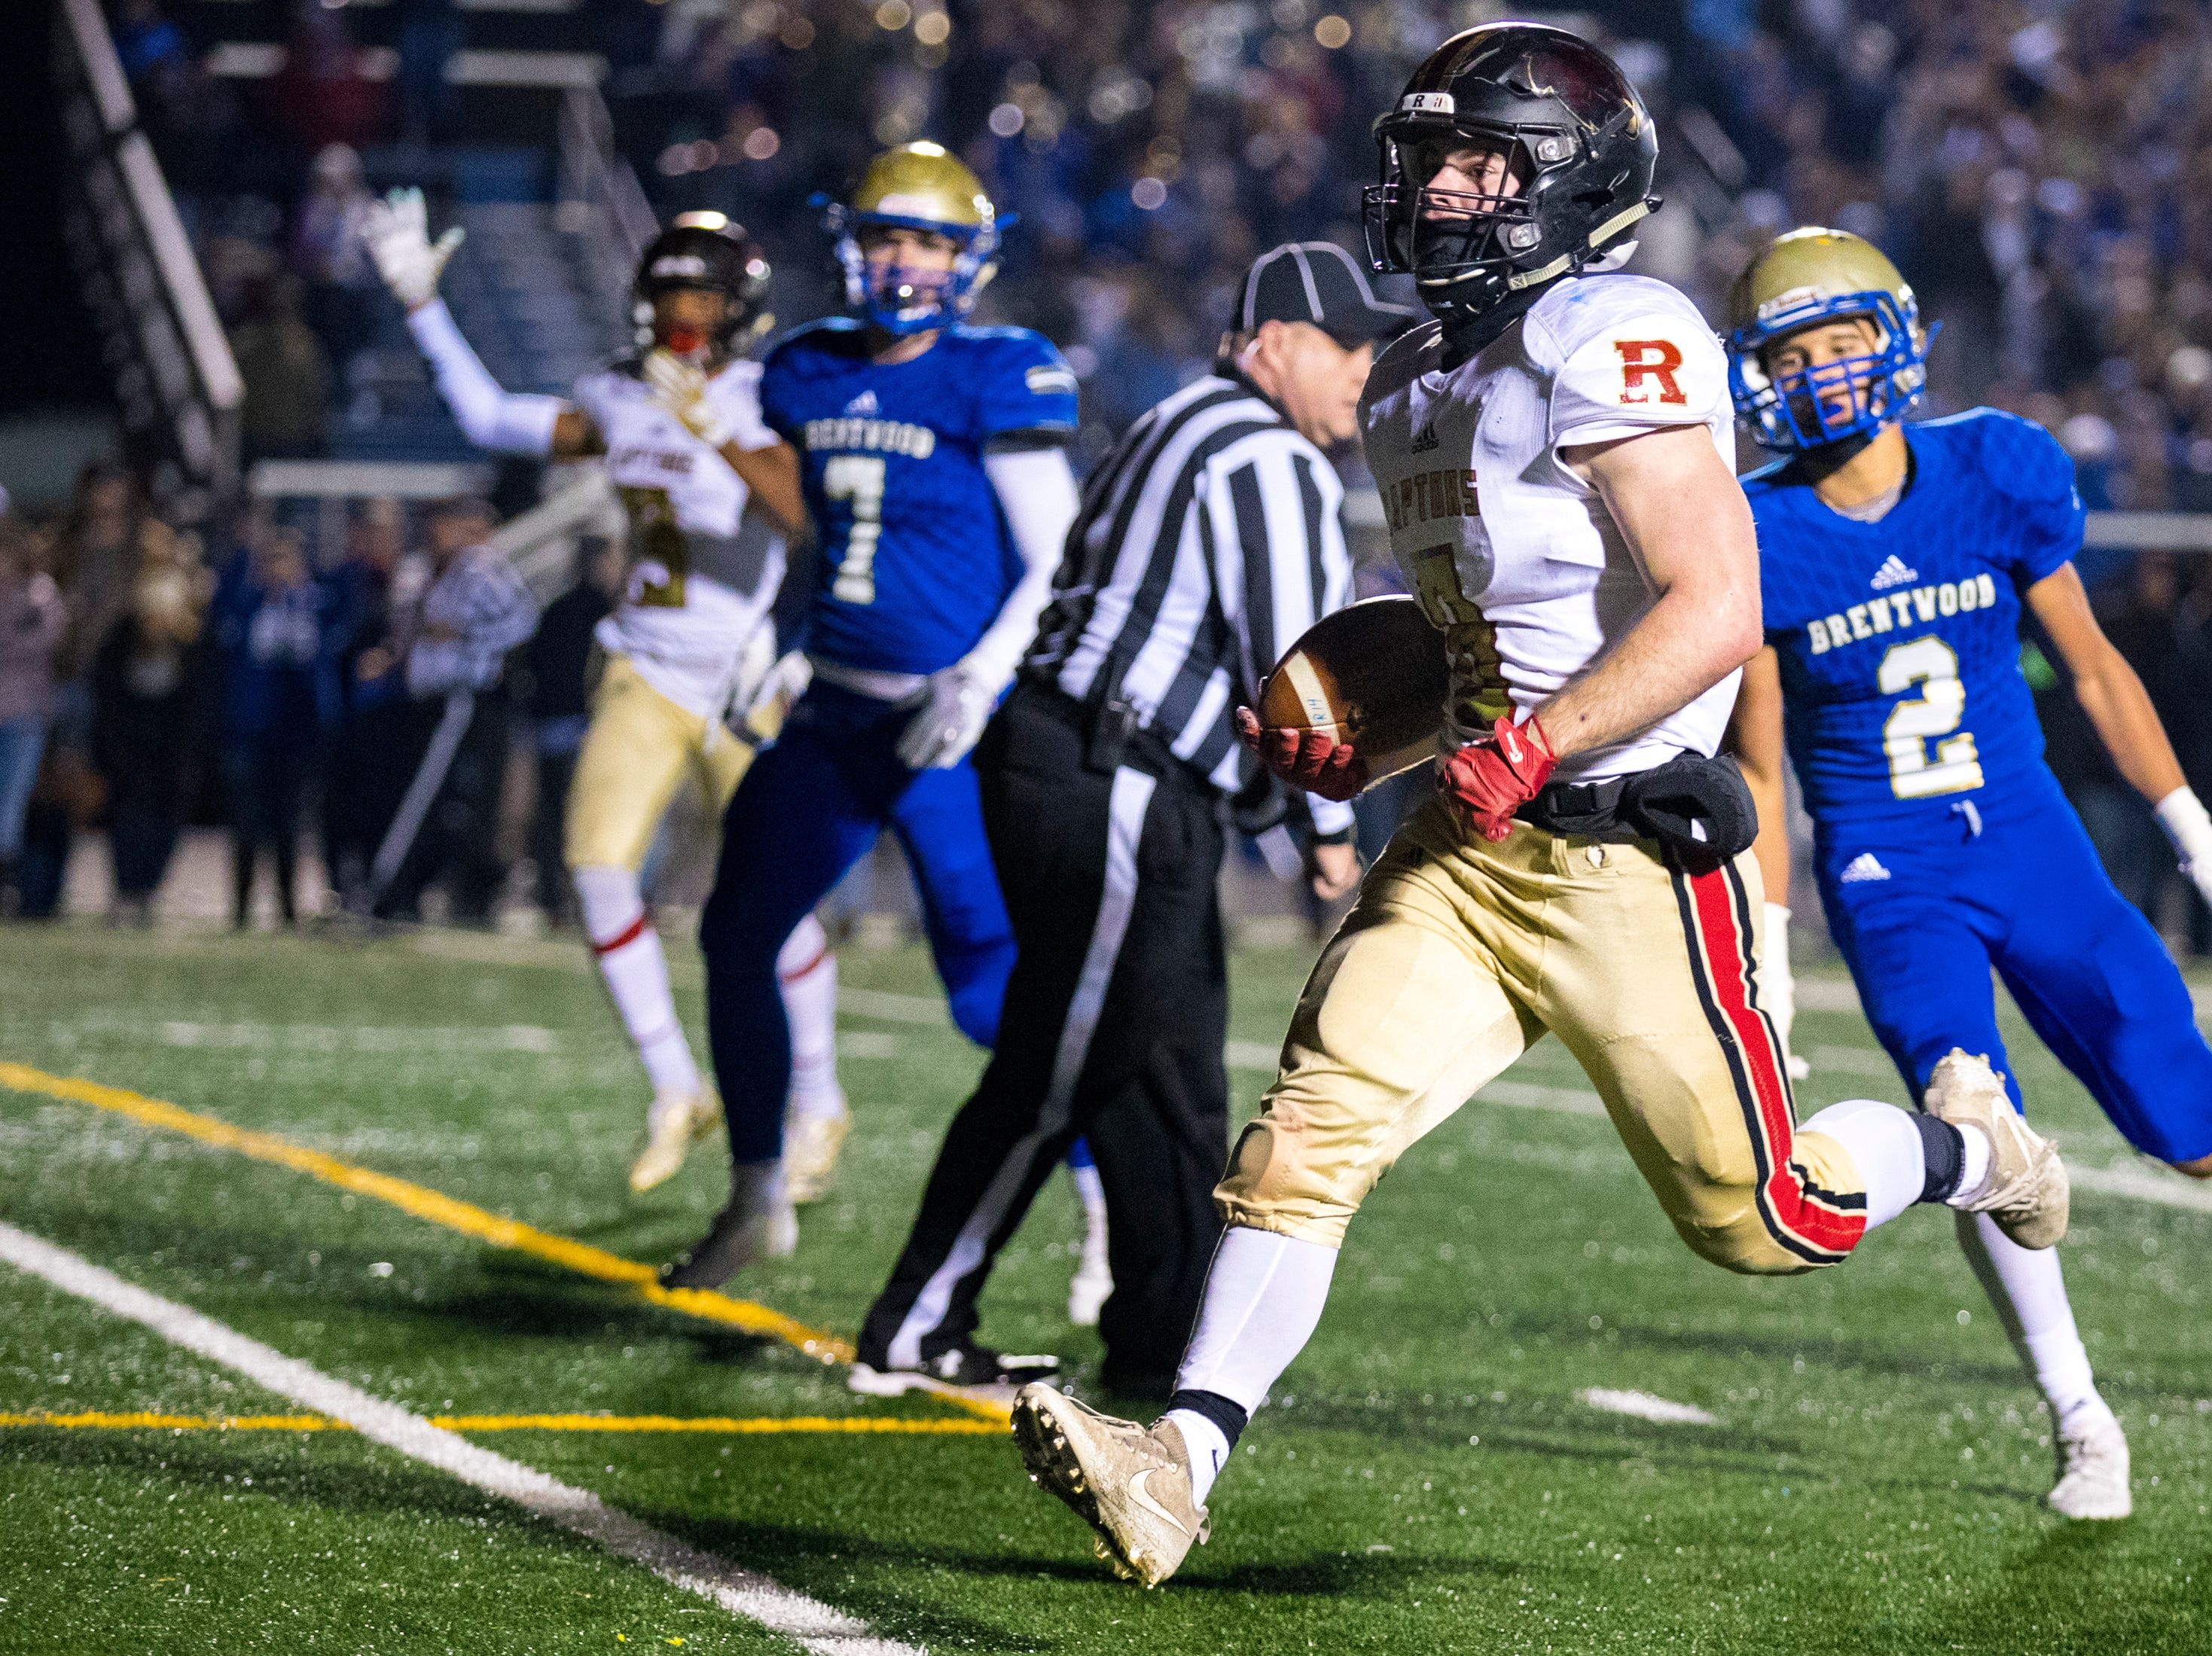 Ravenwood's Rodney Baine (8) scores a touchdown during Brentwood's game against Ravenwood at Brentwood High School in Brentwood on Friday, Nov. 16, 2018.